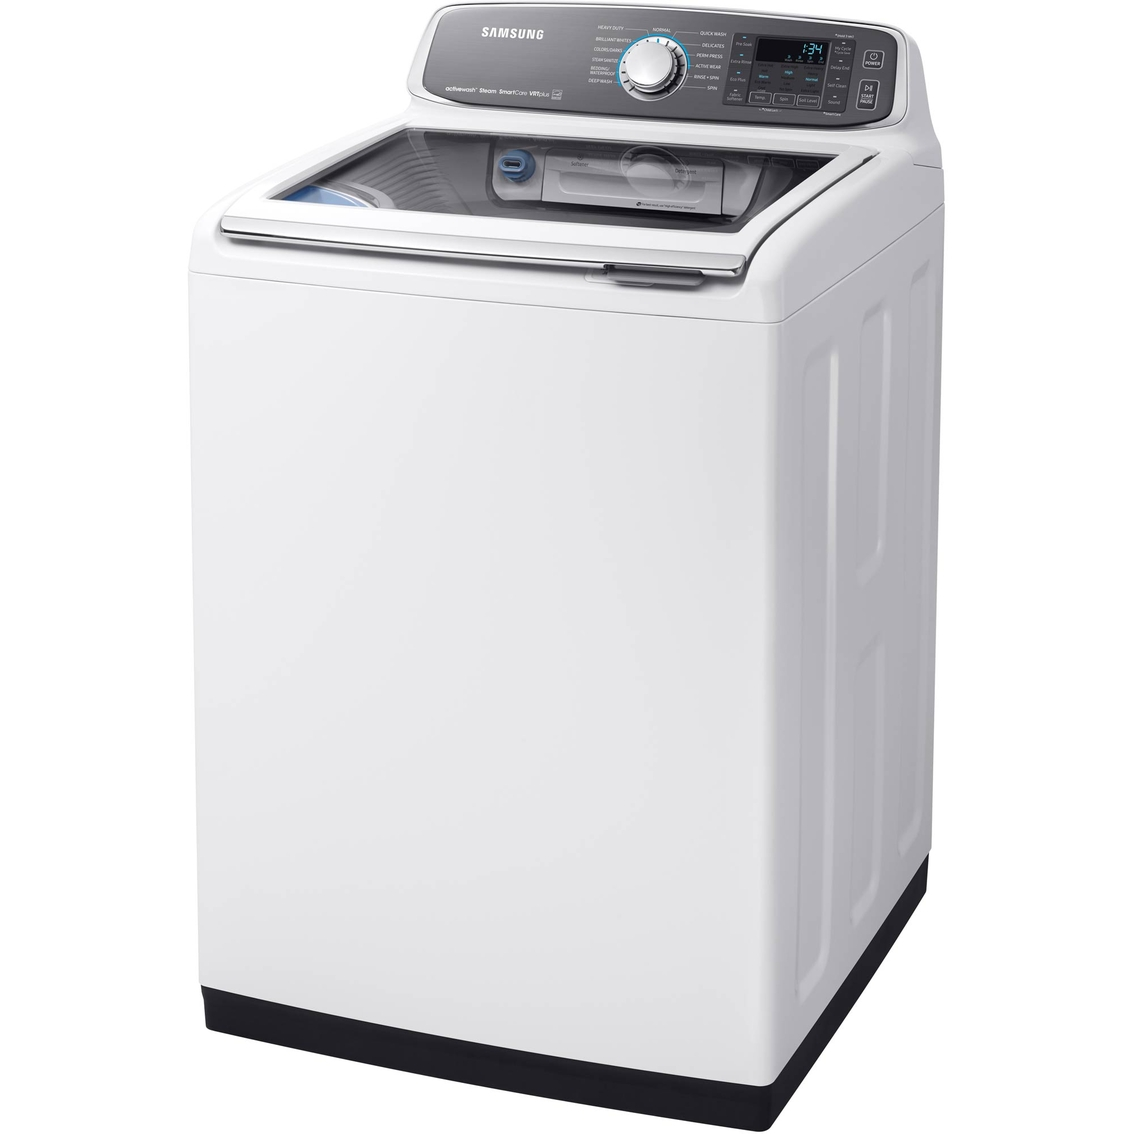 Samsung 5 2 Cu  Ft  Top Load Washer | Washers & Dryers